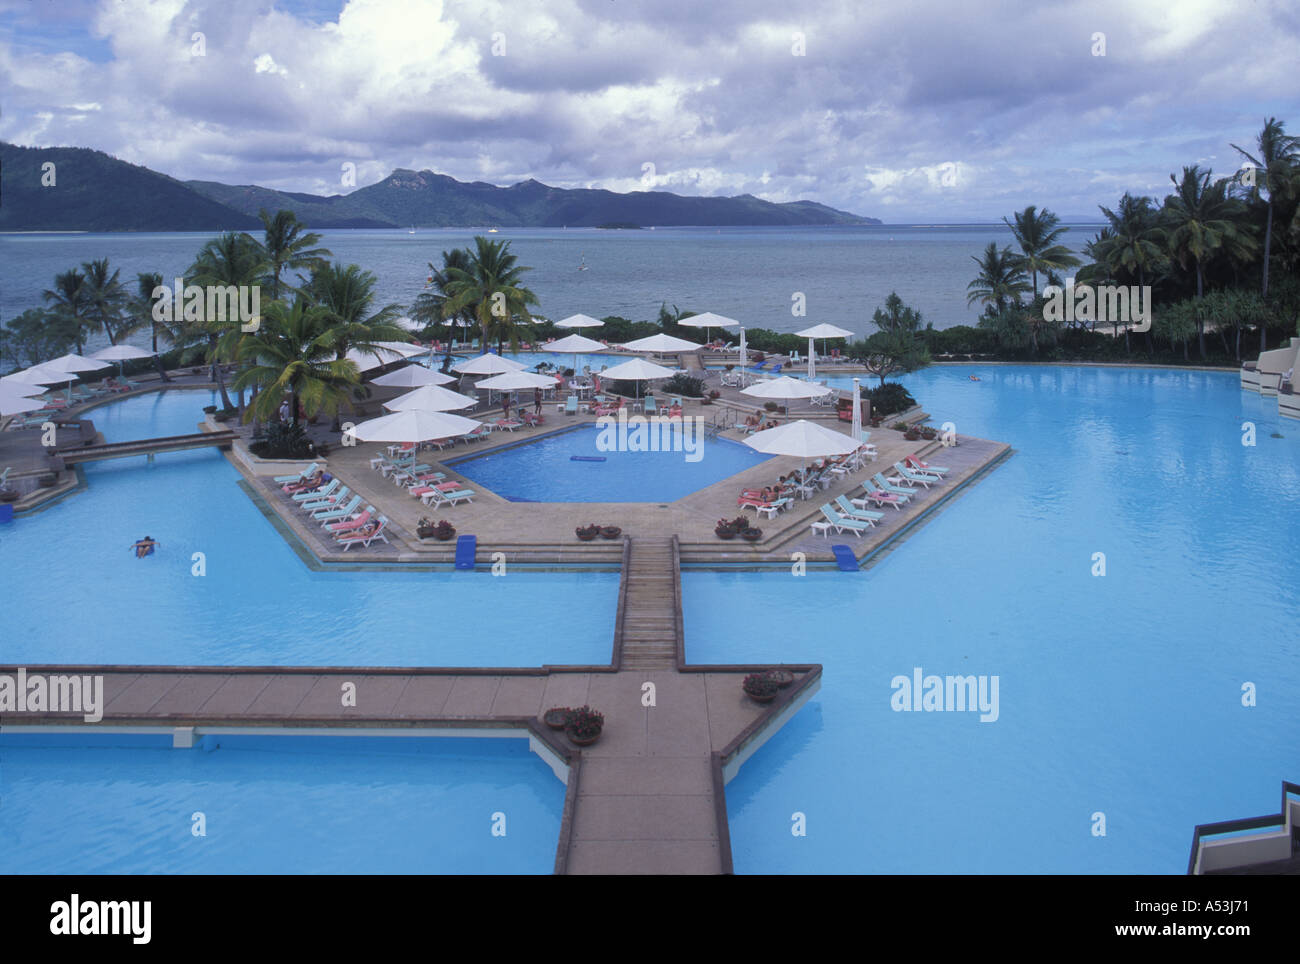 lage prijs groothandel hete verkoop Australia Great Barrier Reef Hotel pool overlooks ocean at ...